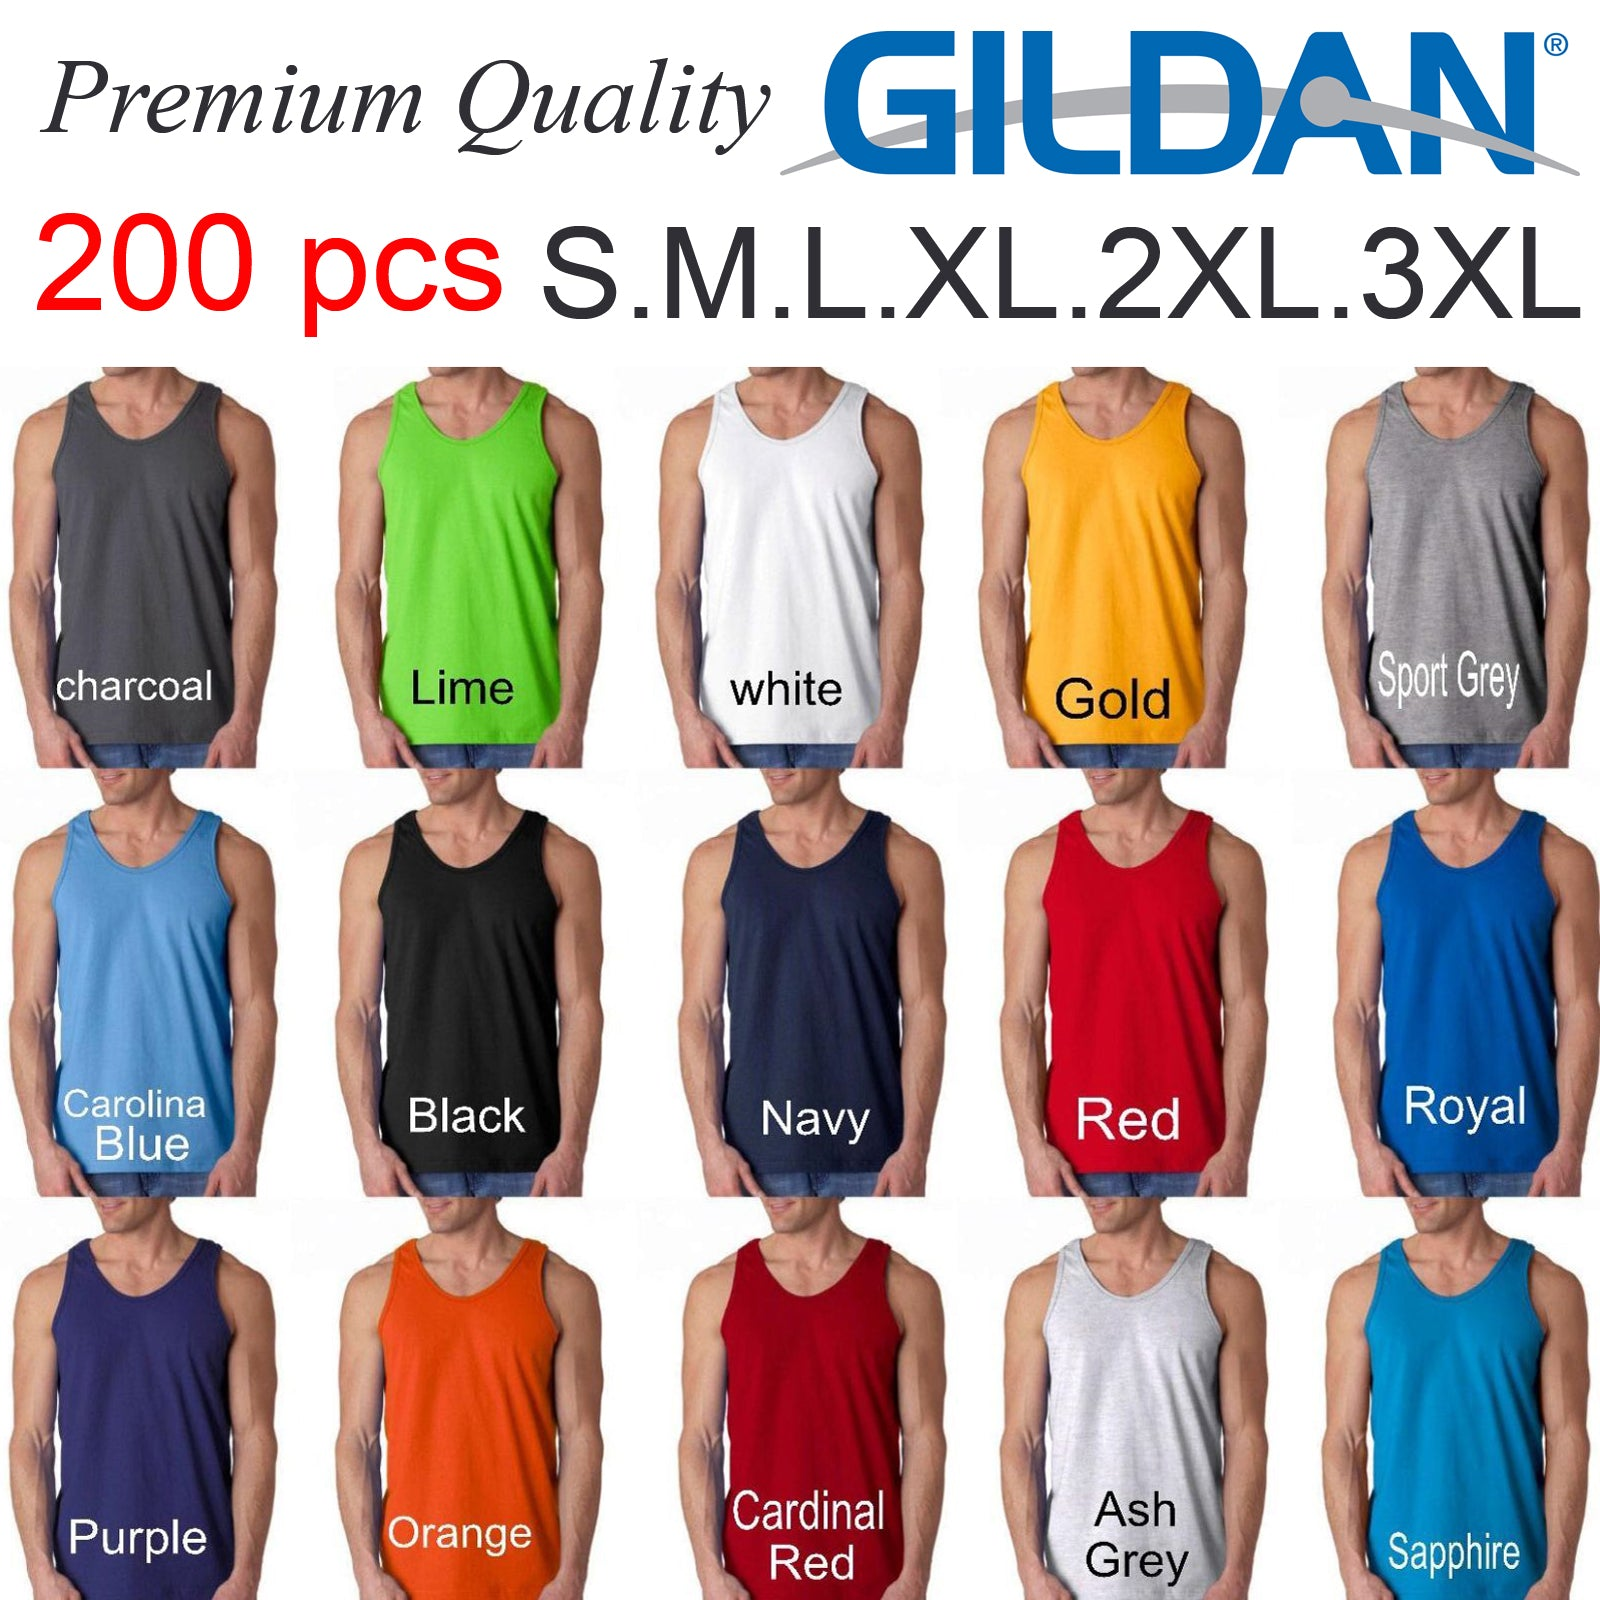 200 pieces Heavy Cotton Gildan blank plain tee sleeveless Shirt Tank Top  Singlet S M L XL 2XL XXL 3XL Men